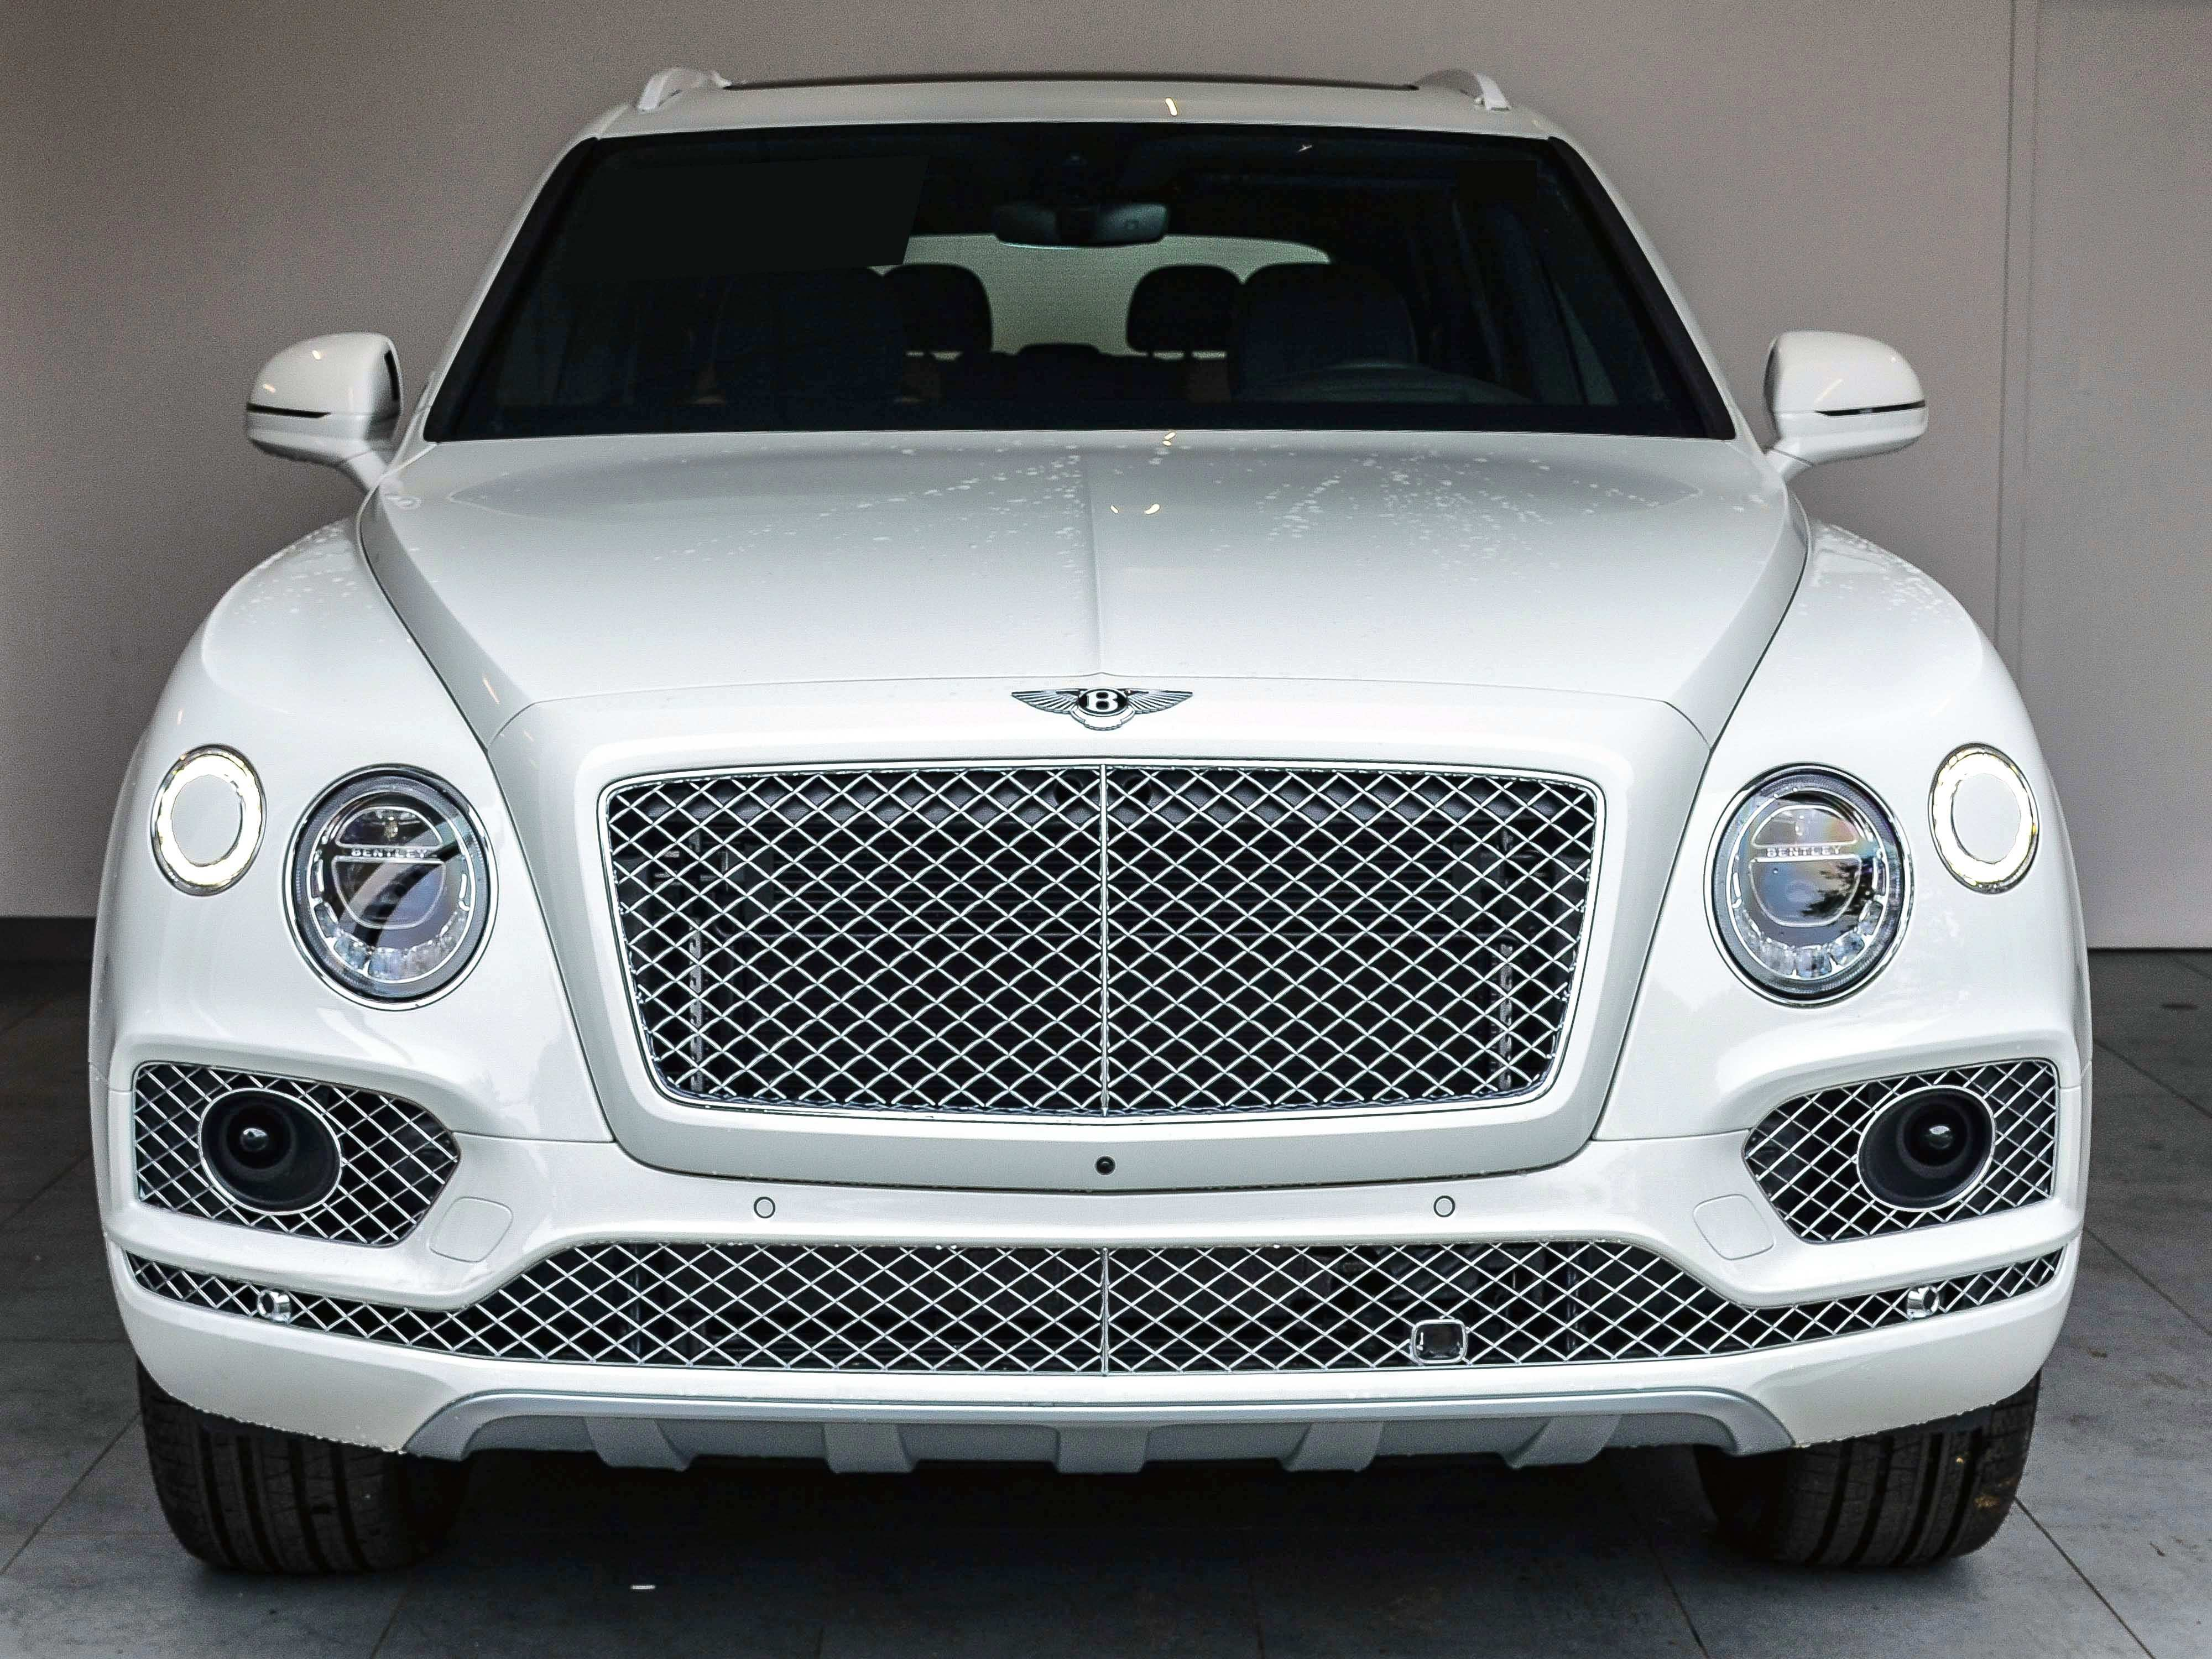 69 Concept of 2019 Bentley Truck Specs by 2019 Bentley Truck